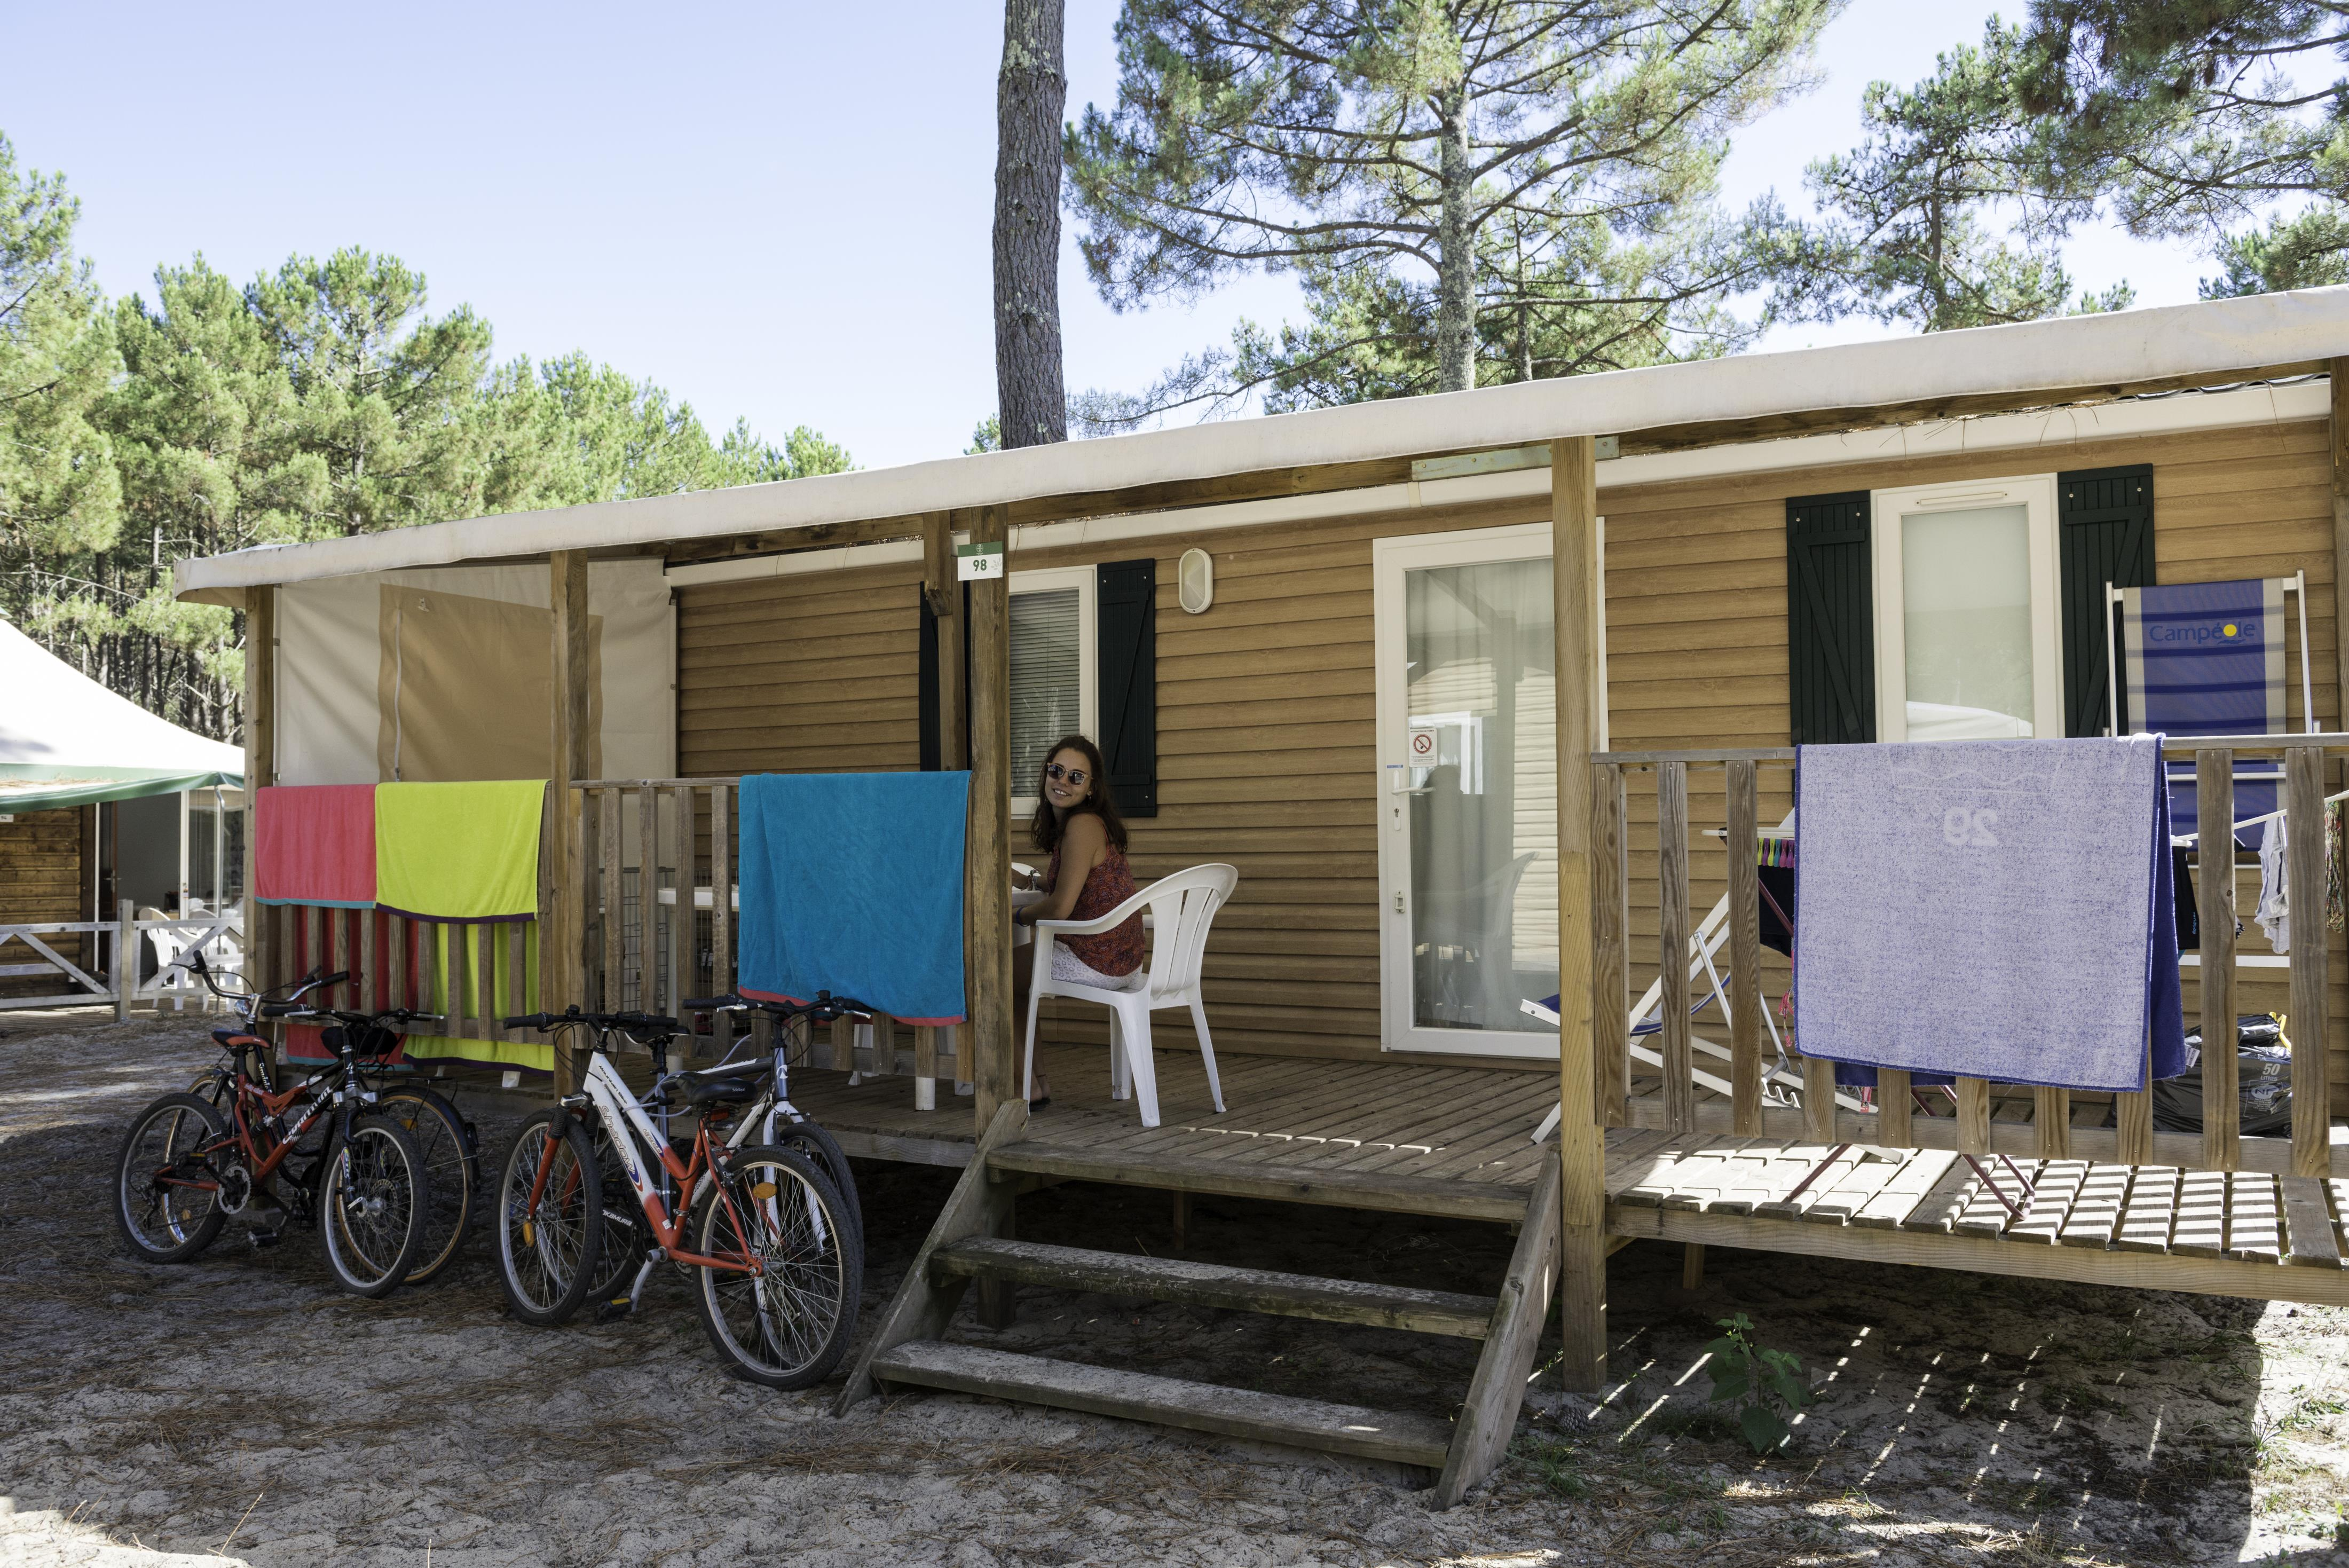 Locatifs - Mobil-Home 30M² 3 Chambres - Camping Campéole Clairefontaine